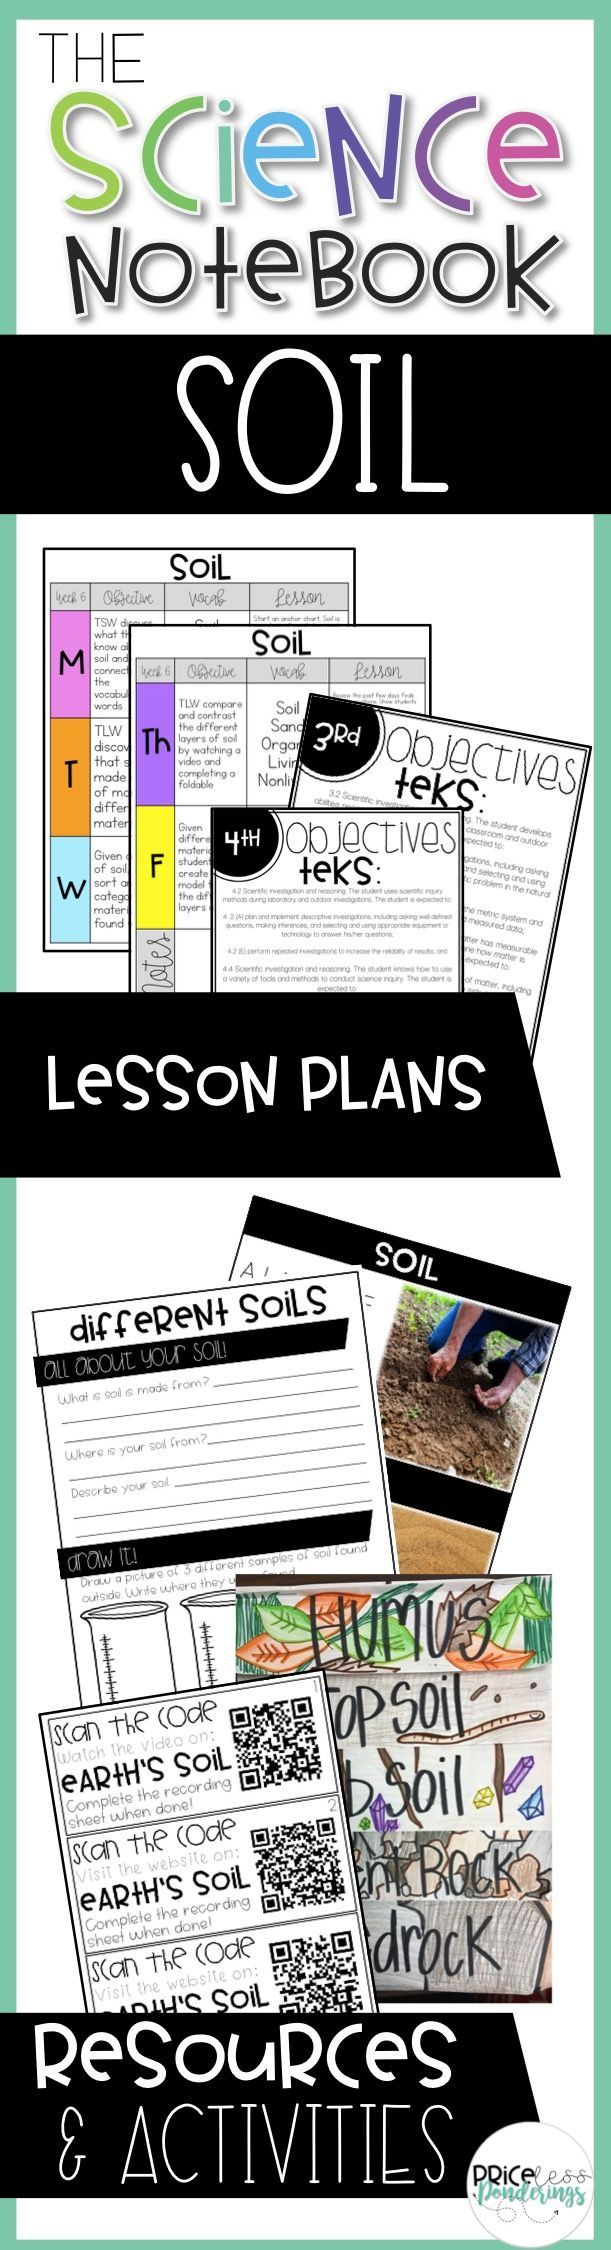 Soil lesson plans and resources to teach students about the layers and properties of soil. Resources include lesson plans, activities, labs, homework, early finisher activities, QR codes, AND SO MUCH MORE!